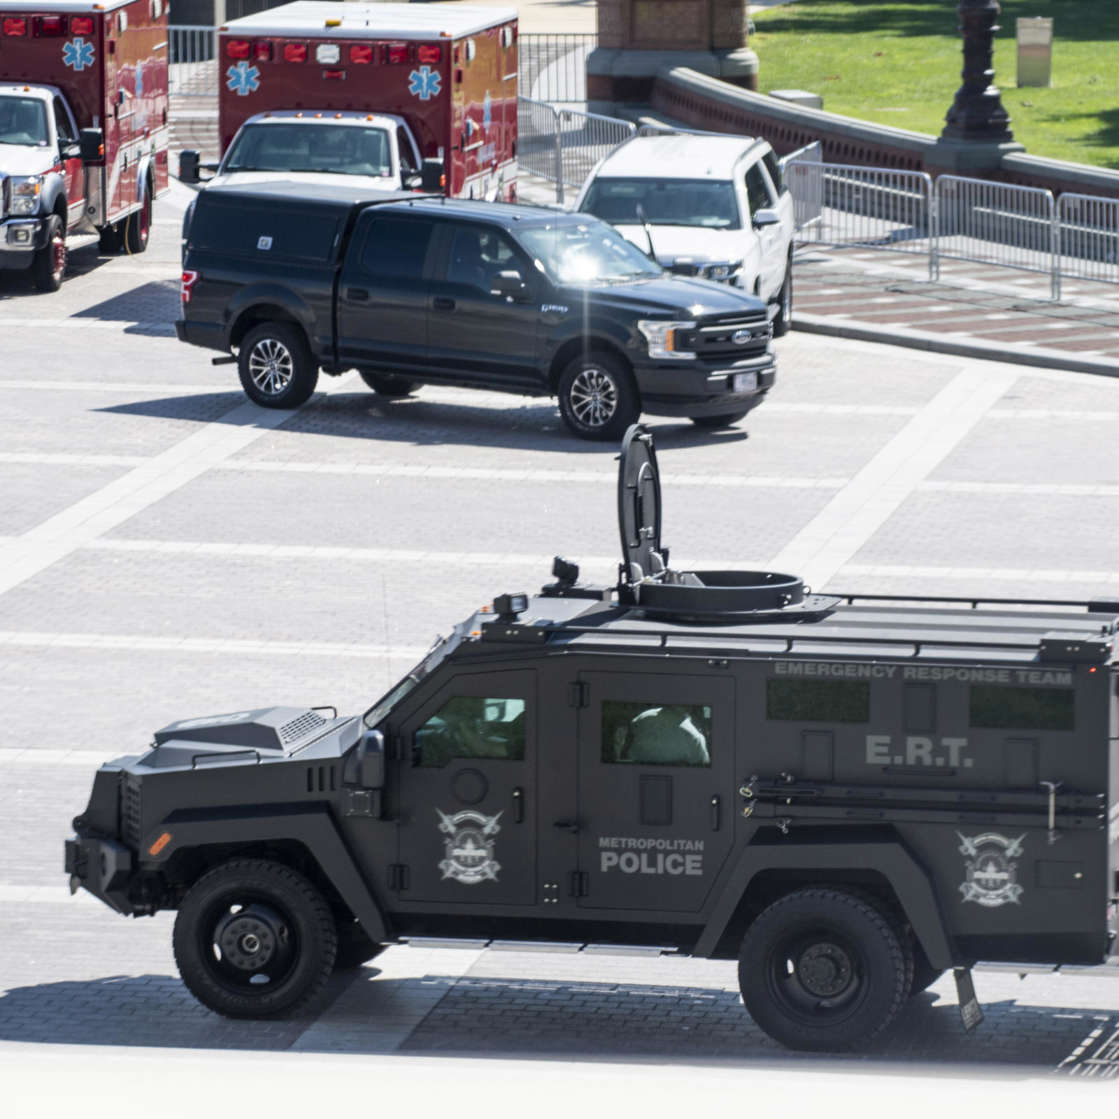 a truck is parked on the side of a road: Library of Congress Bomb Threat